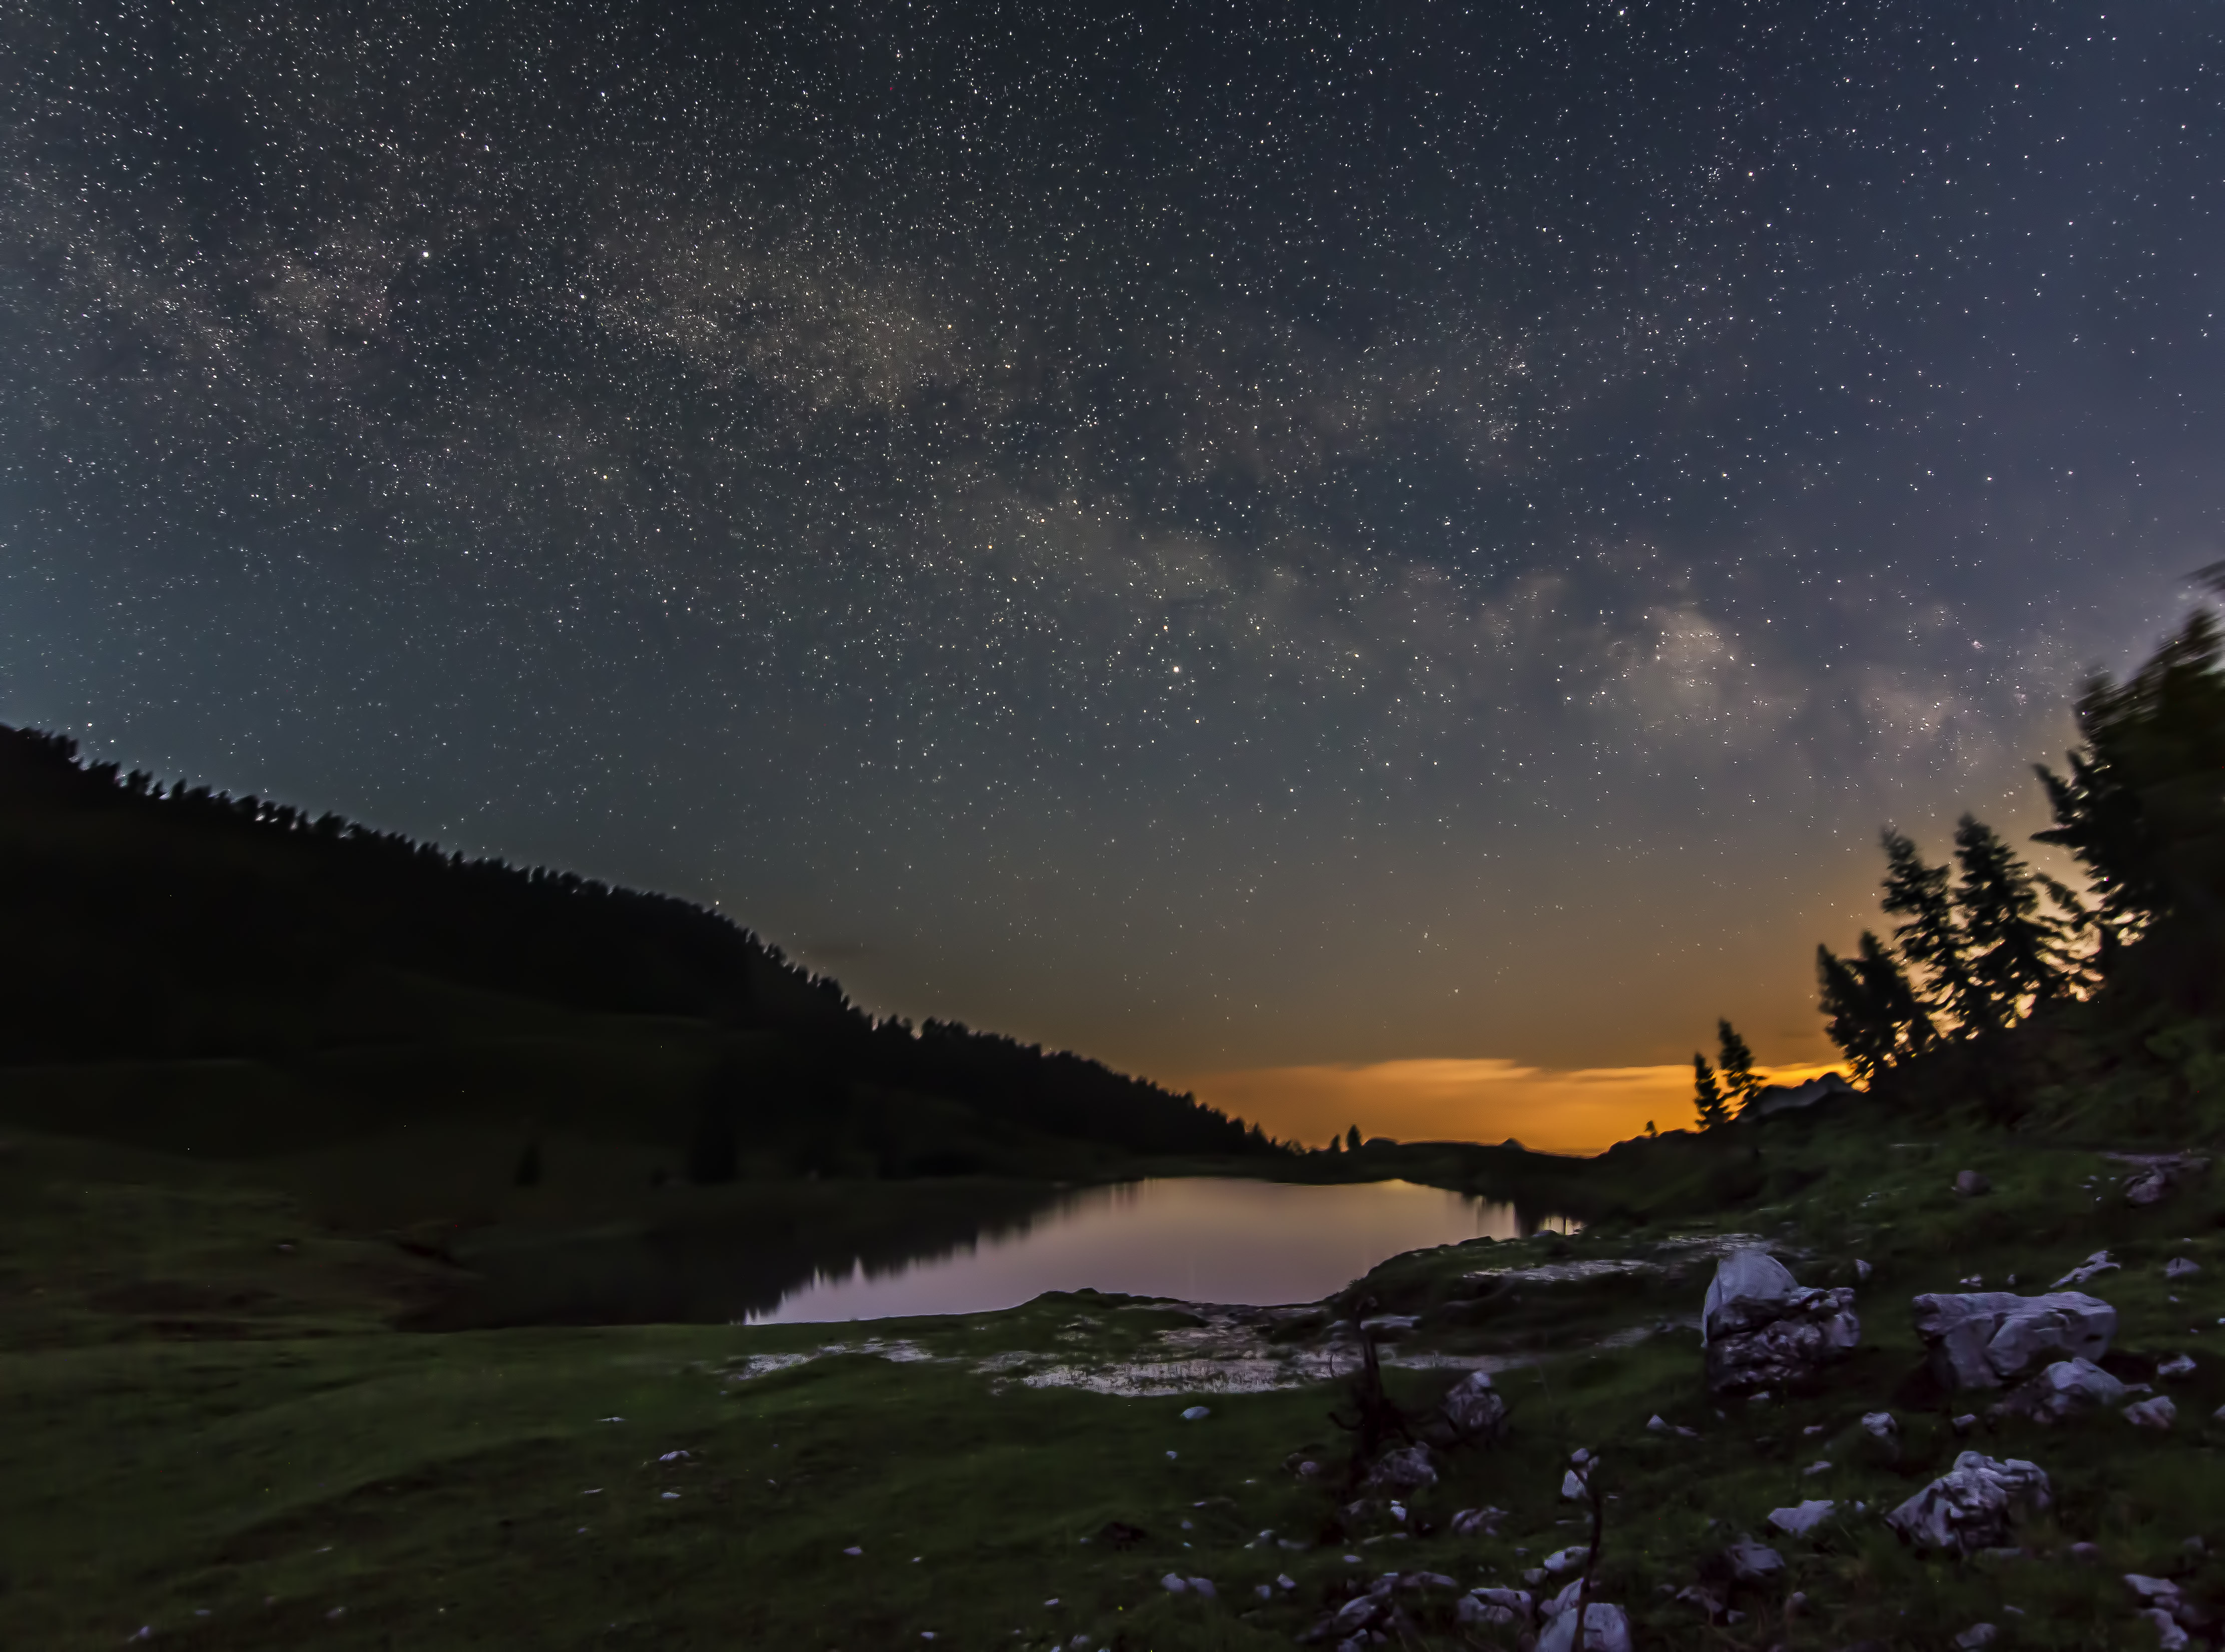 Milky Way over lake